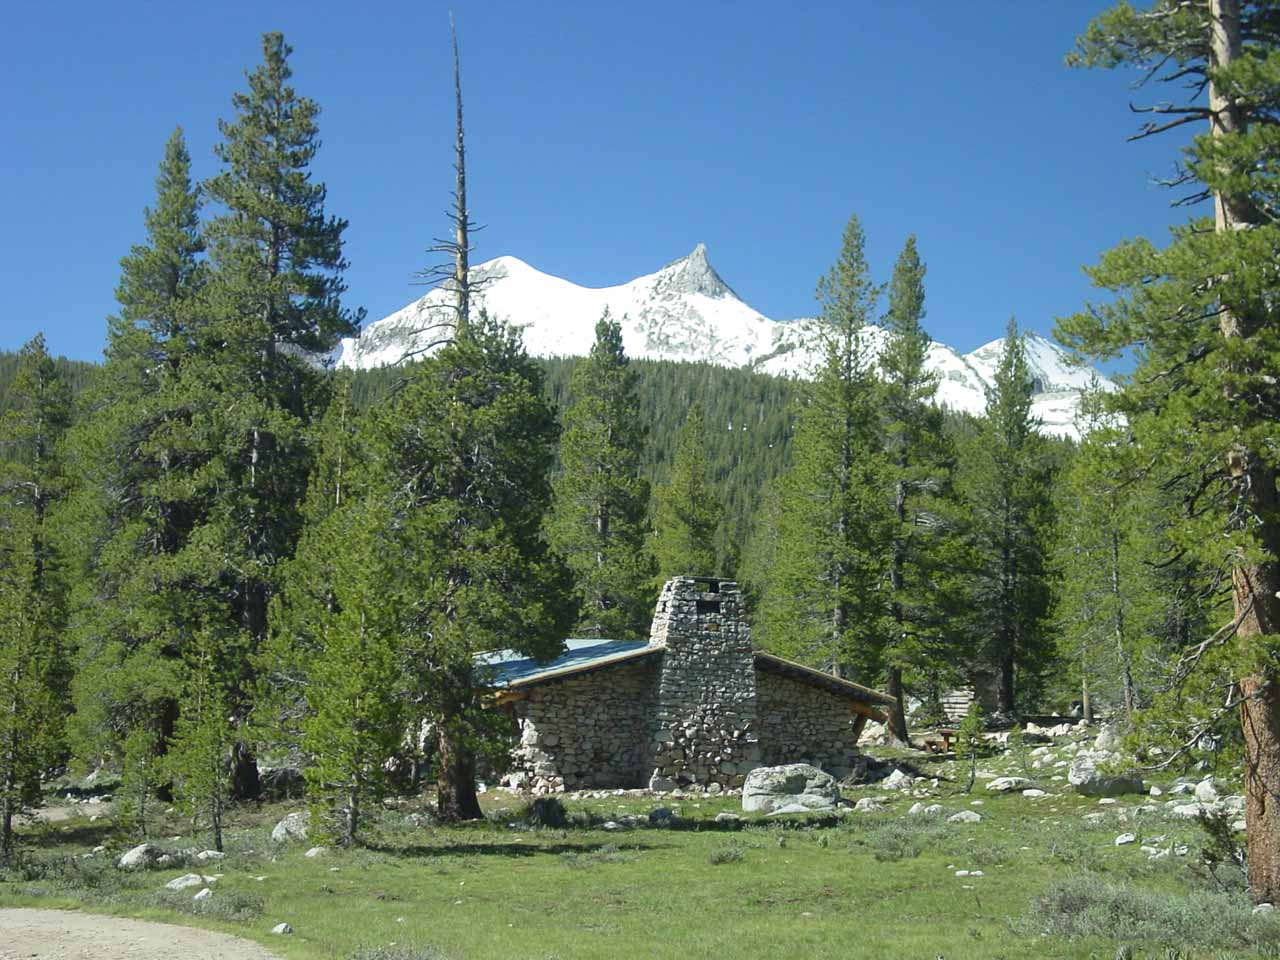 Early in our hike to Waterwheel Falls on our first attempt, we passed through Tuolumne Meadows which was surrounded by granite formations like Unicorn Peak behind this cabin